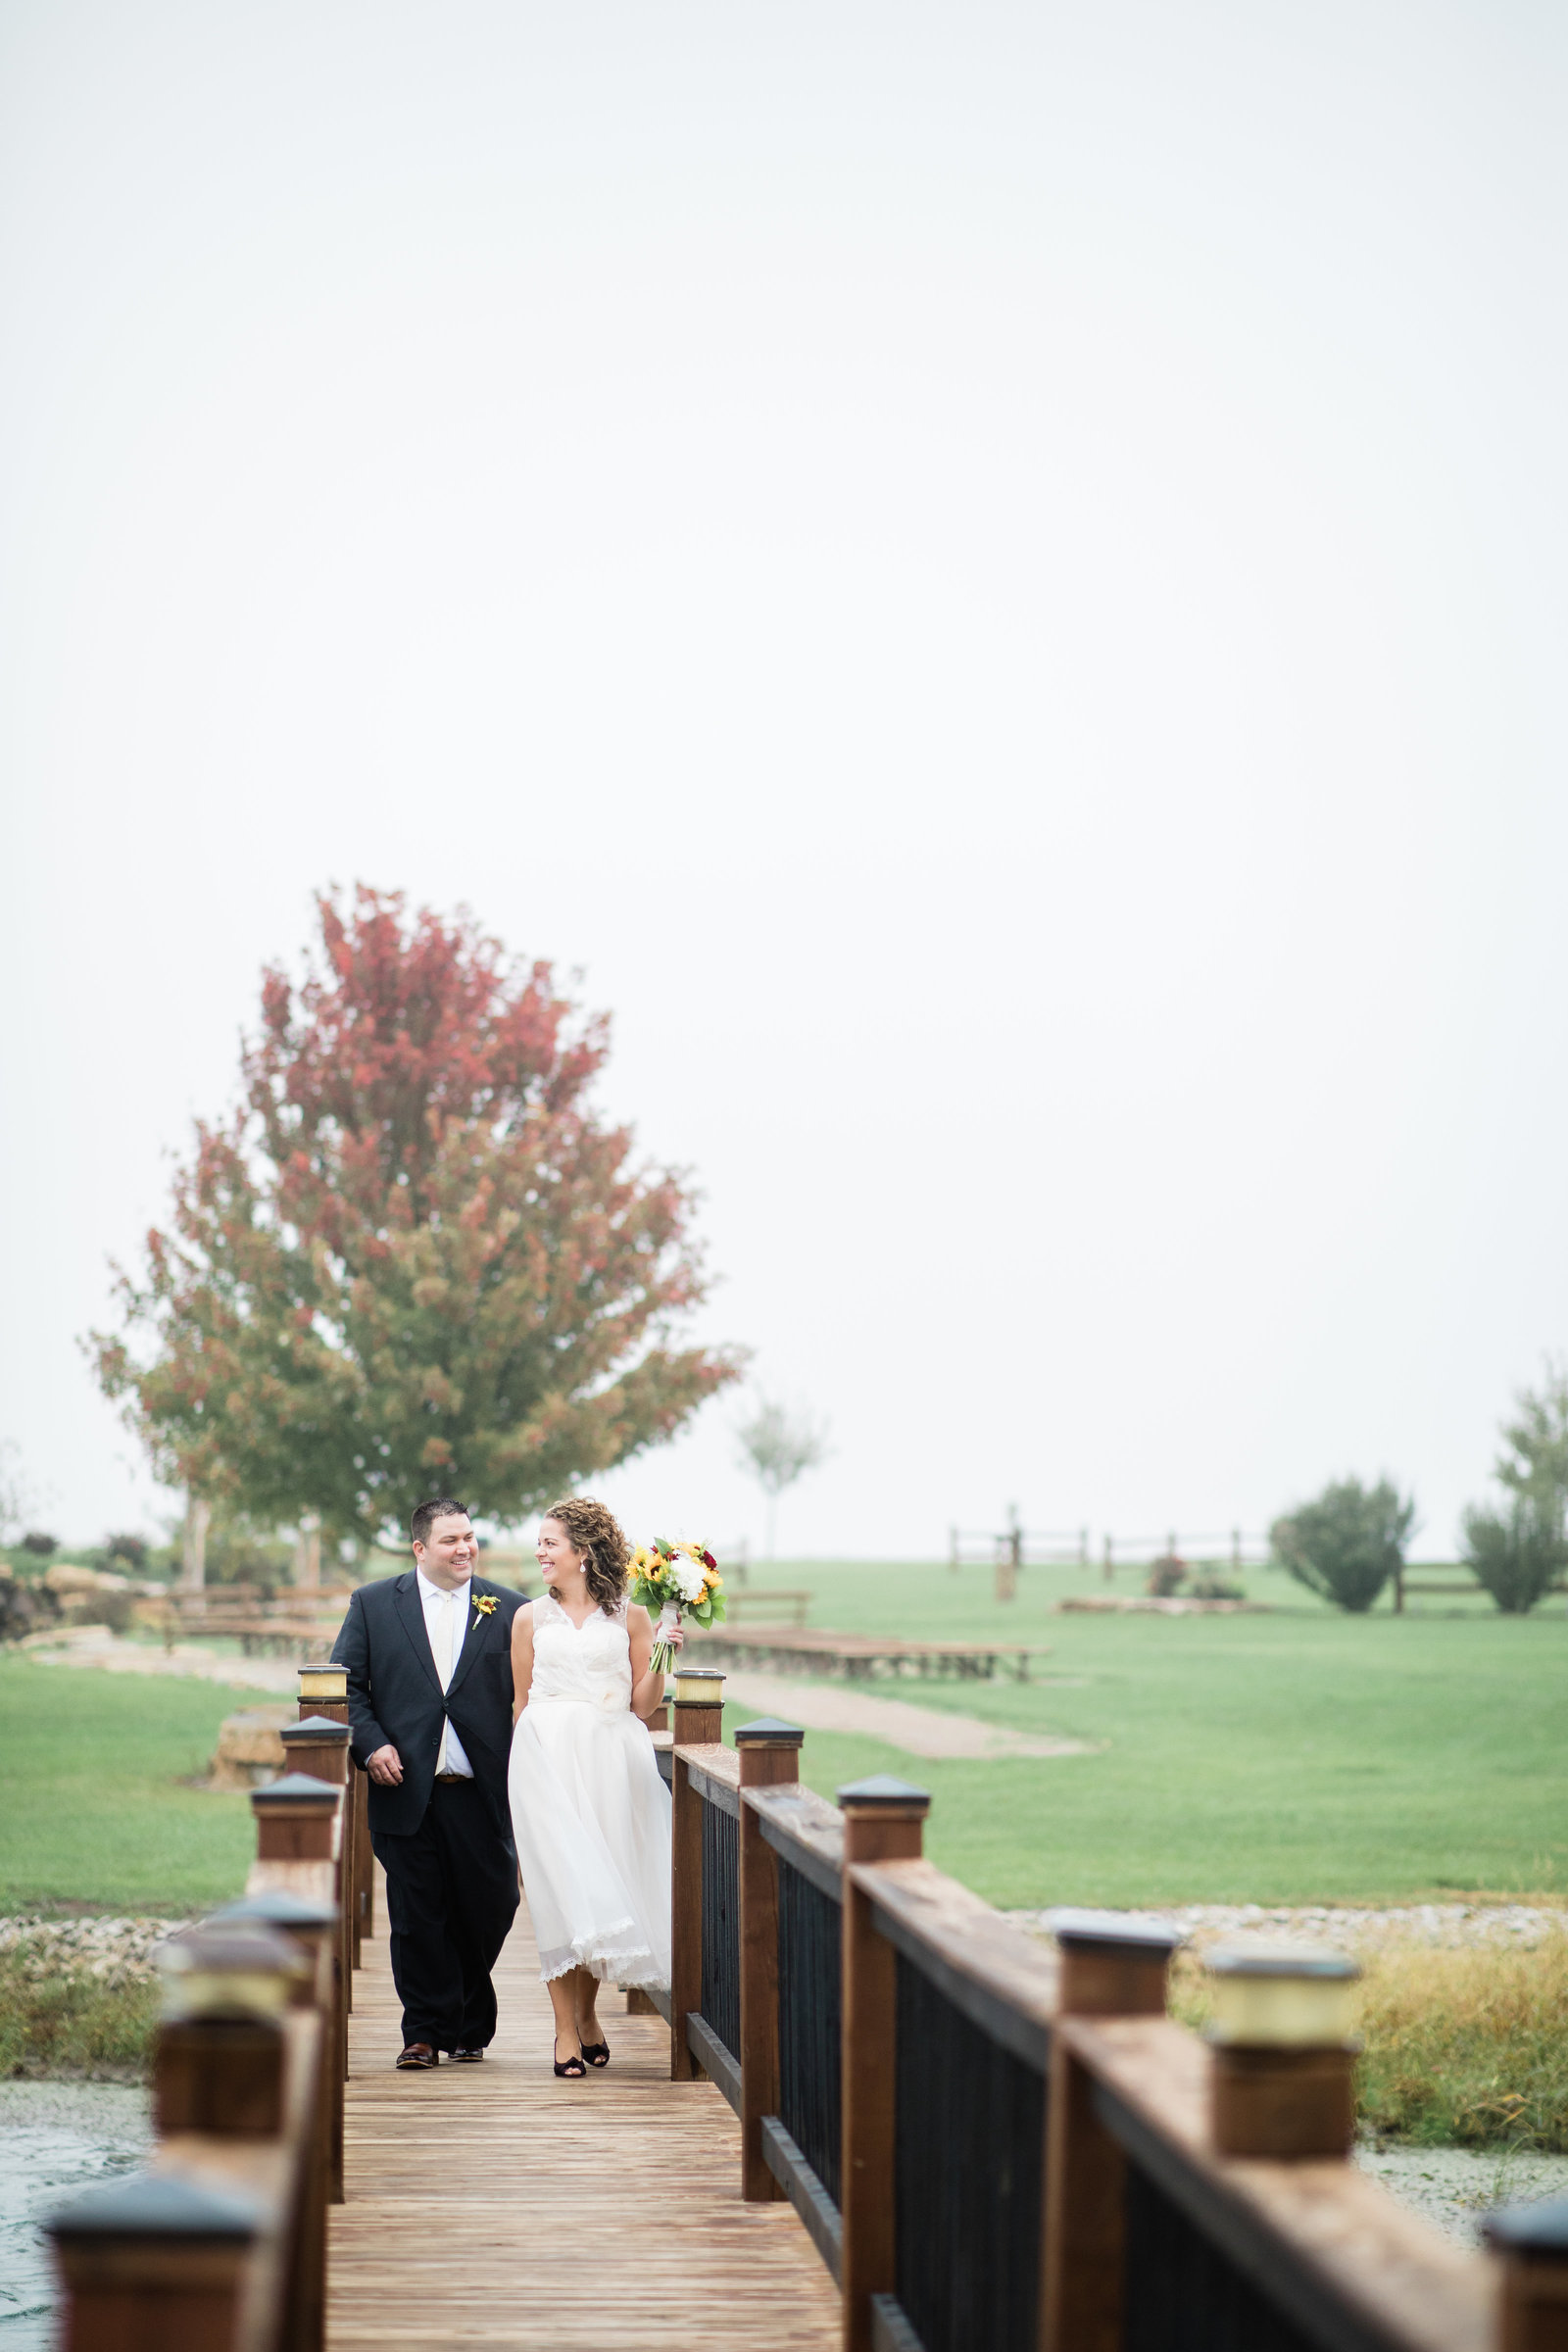 Heather & Mathew-0018